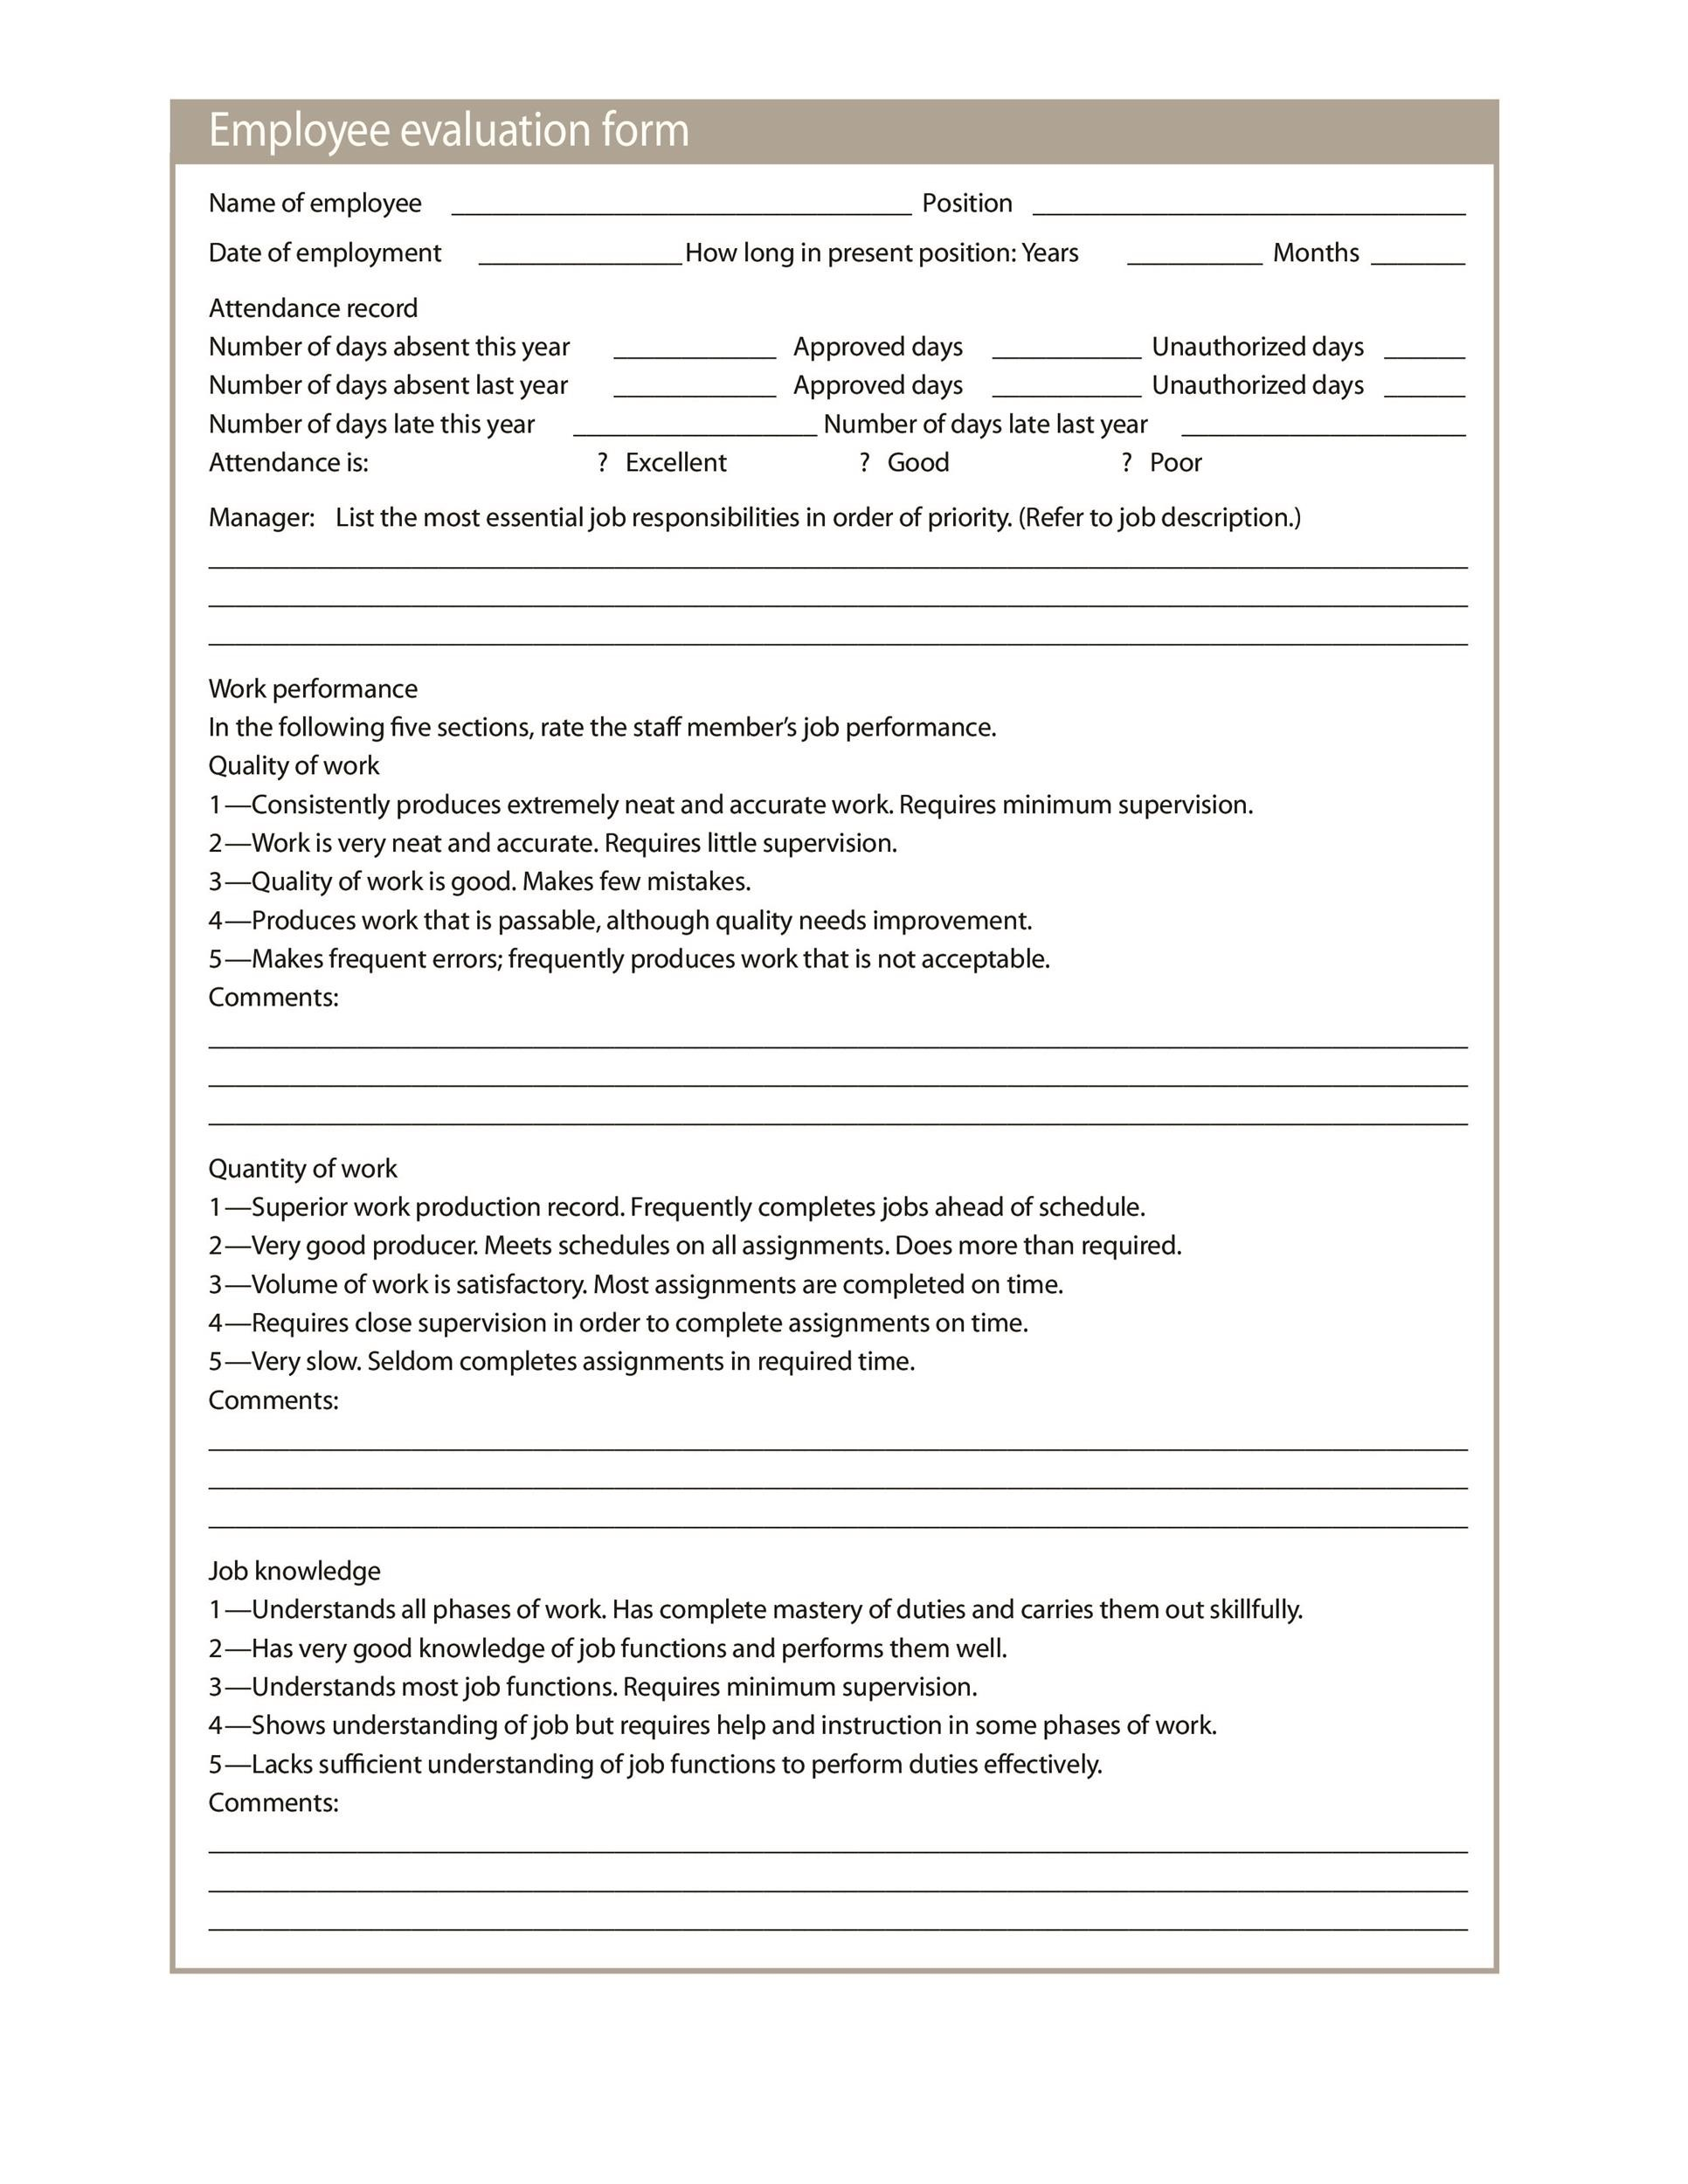 performance appraisal form Yes, our generic employee evaluation form is essentially the same thing as an employee performance review form, a job performance evaluation form, an employee assessment form, or an employee annual review form.